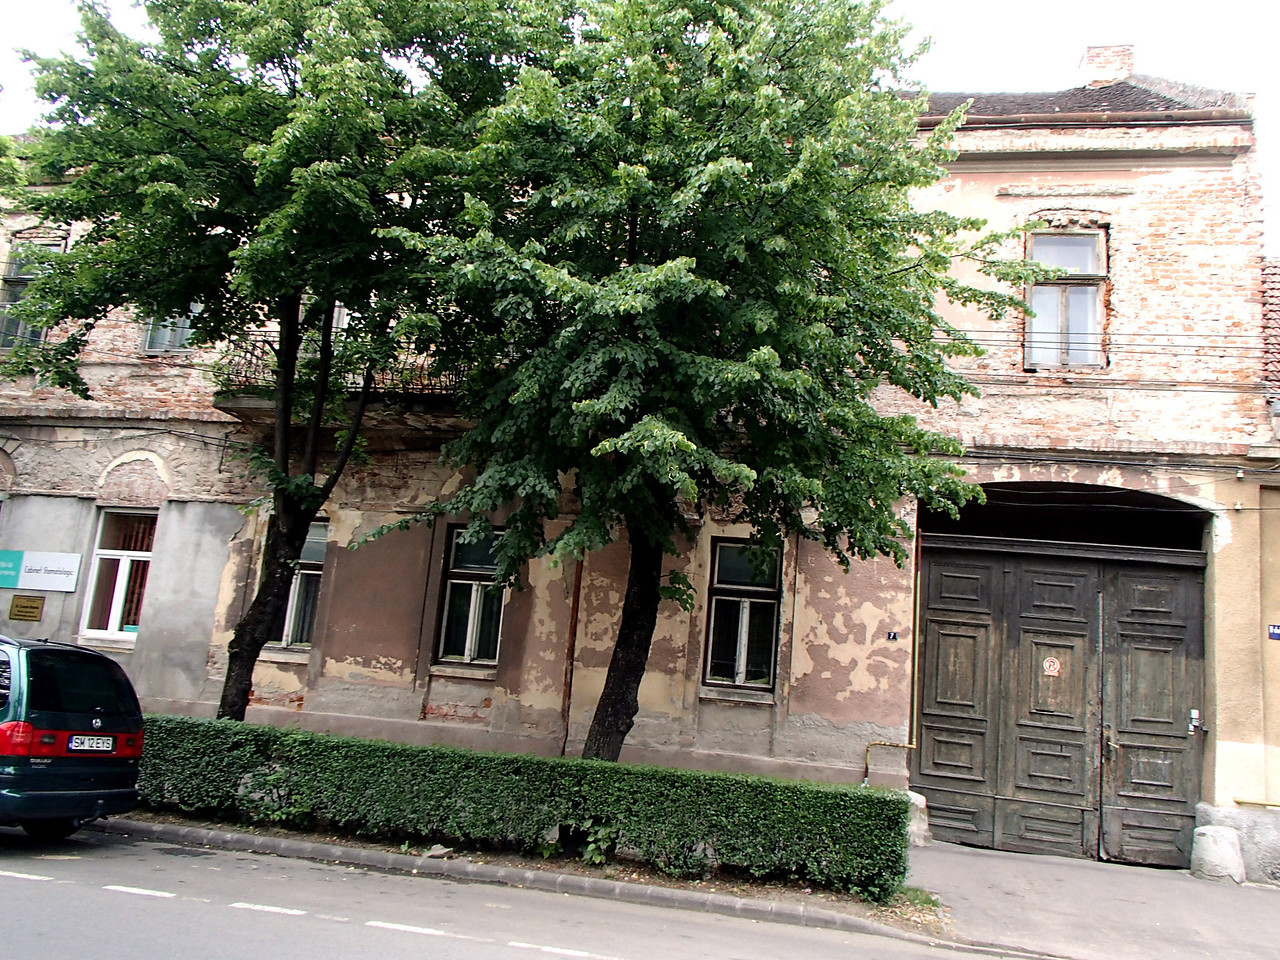 0118 Szatmar Farkas house Arpad  utca 11, or Strade republicii 11 both name and number have changed